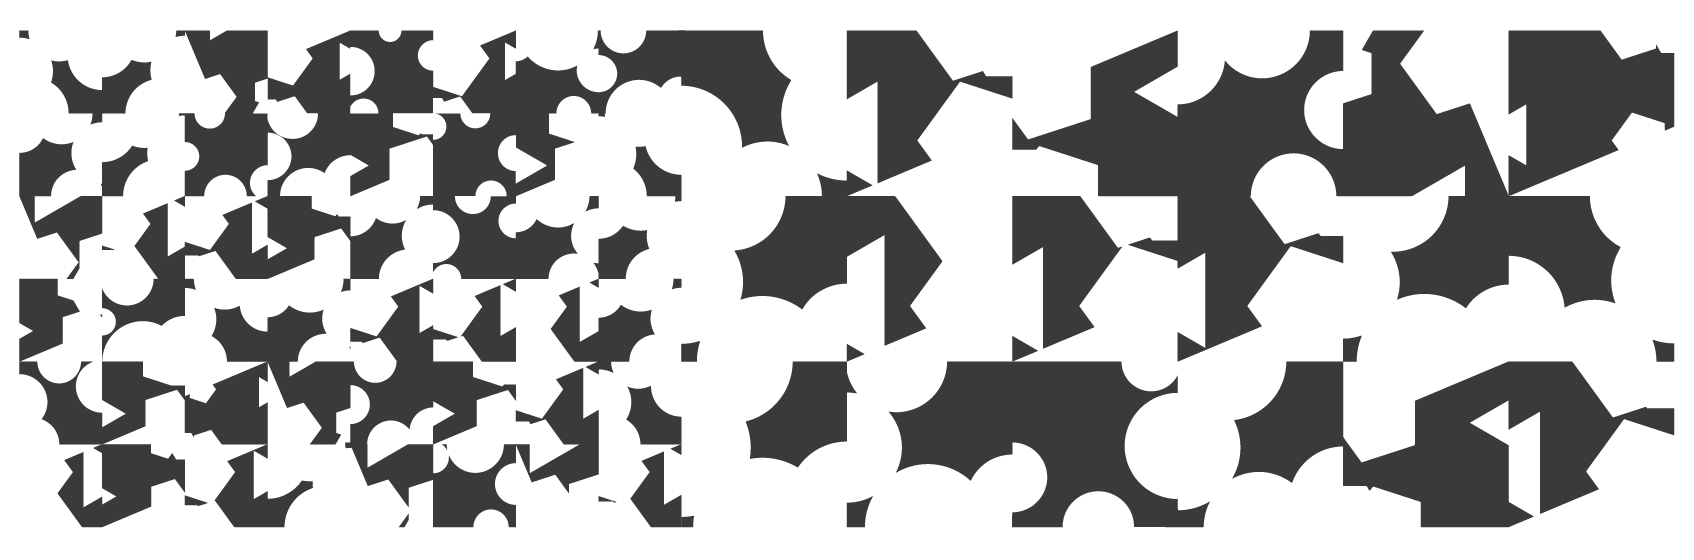 2D grid with square base generated from parameters, rotations, and variations in the scaling and frequency of circular and polygonal cut-outs